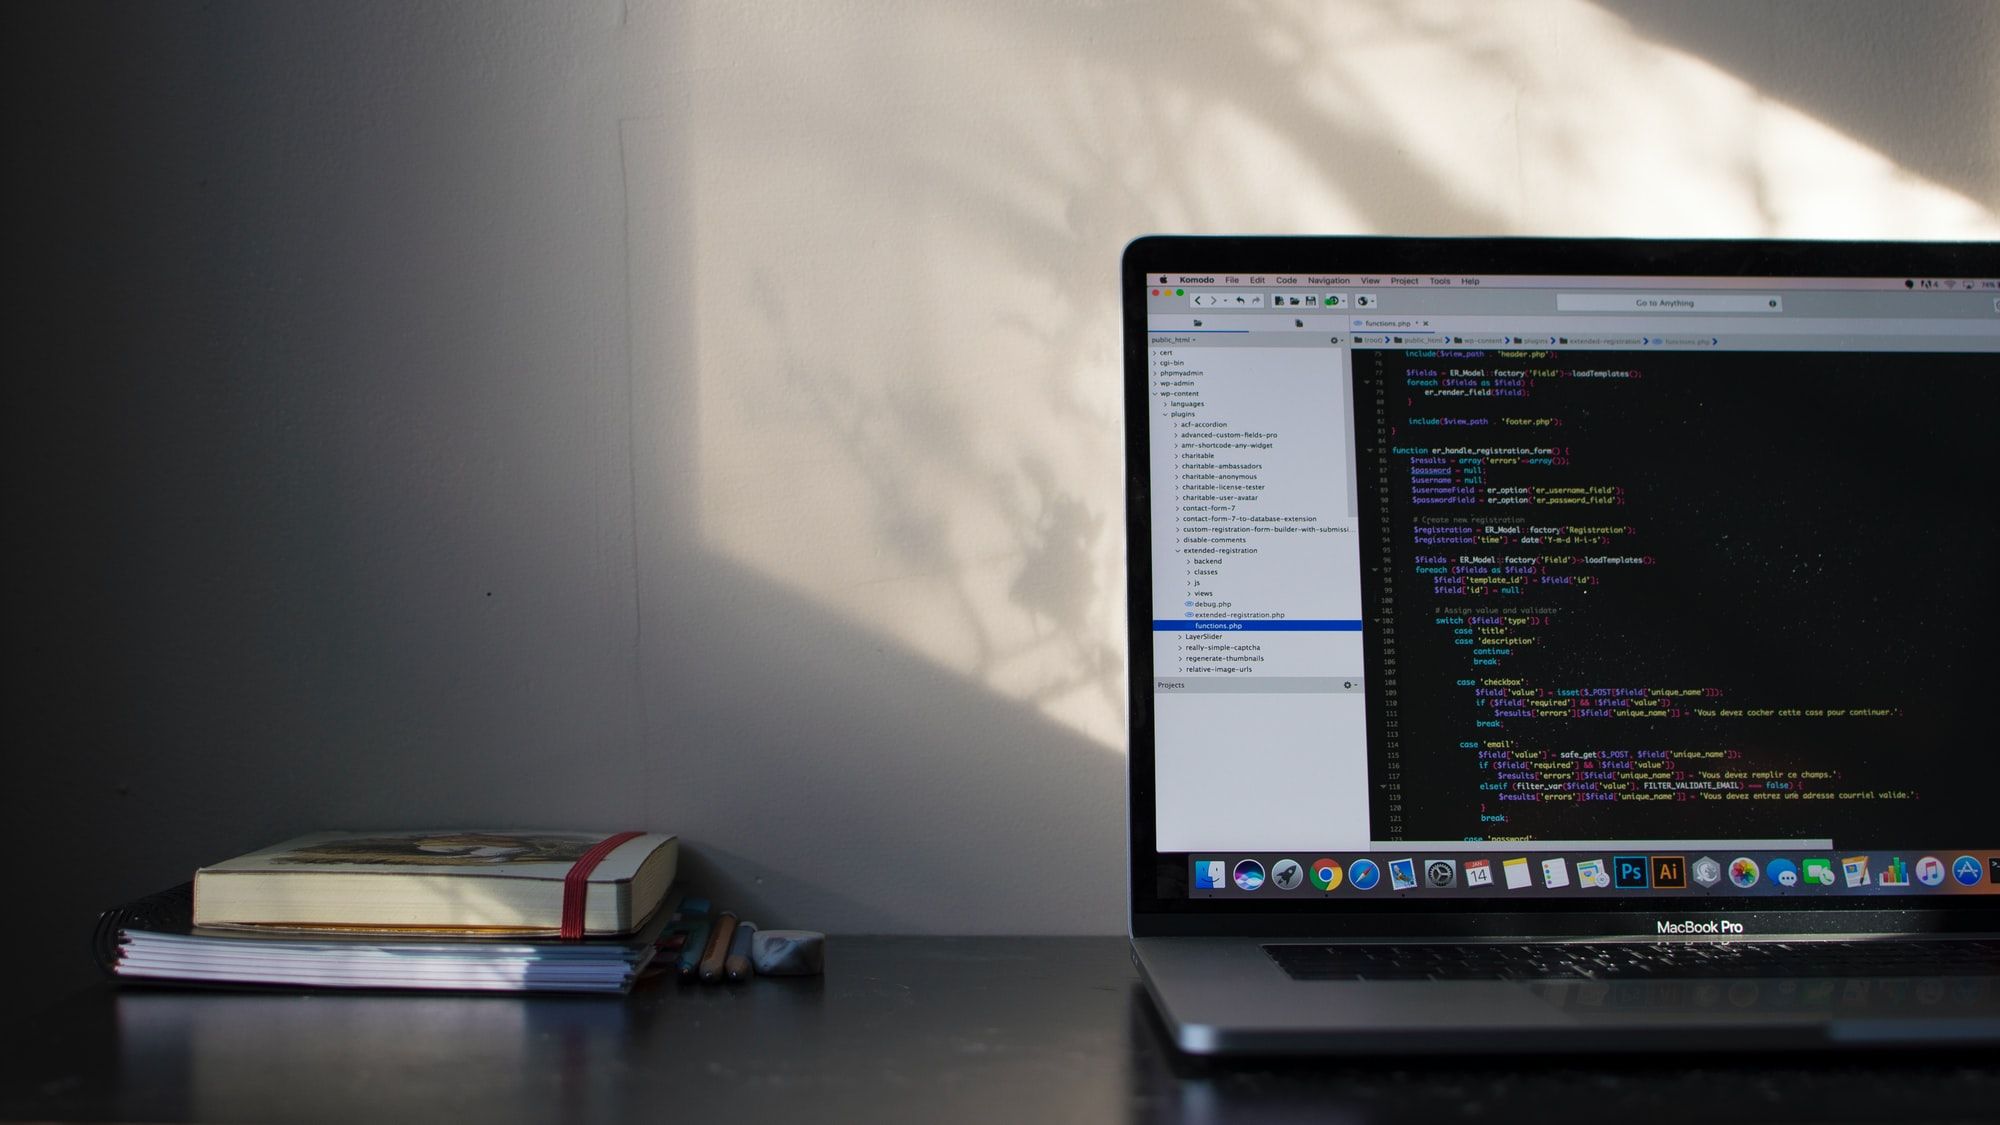 How to host multiple local websites with macOS Big Sur